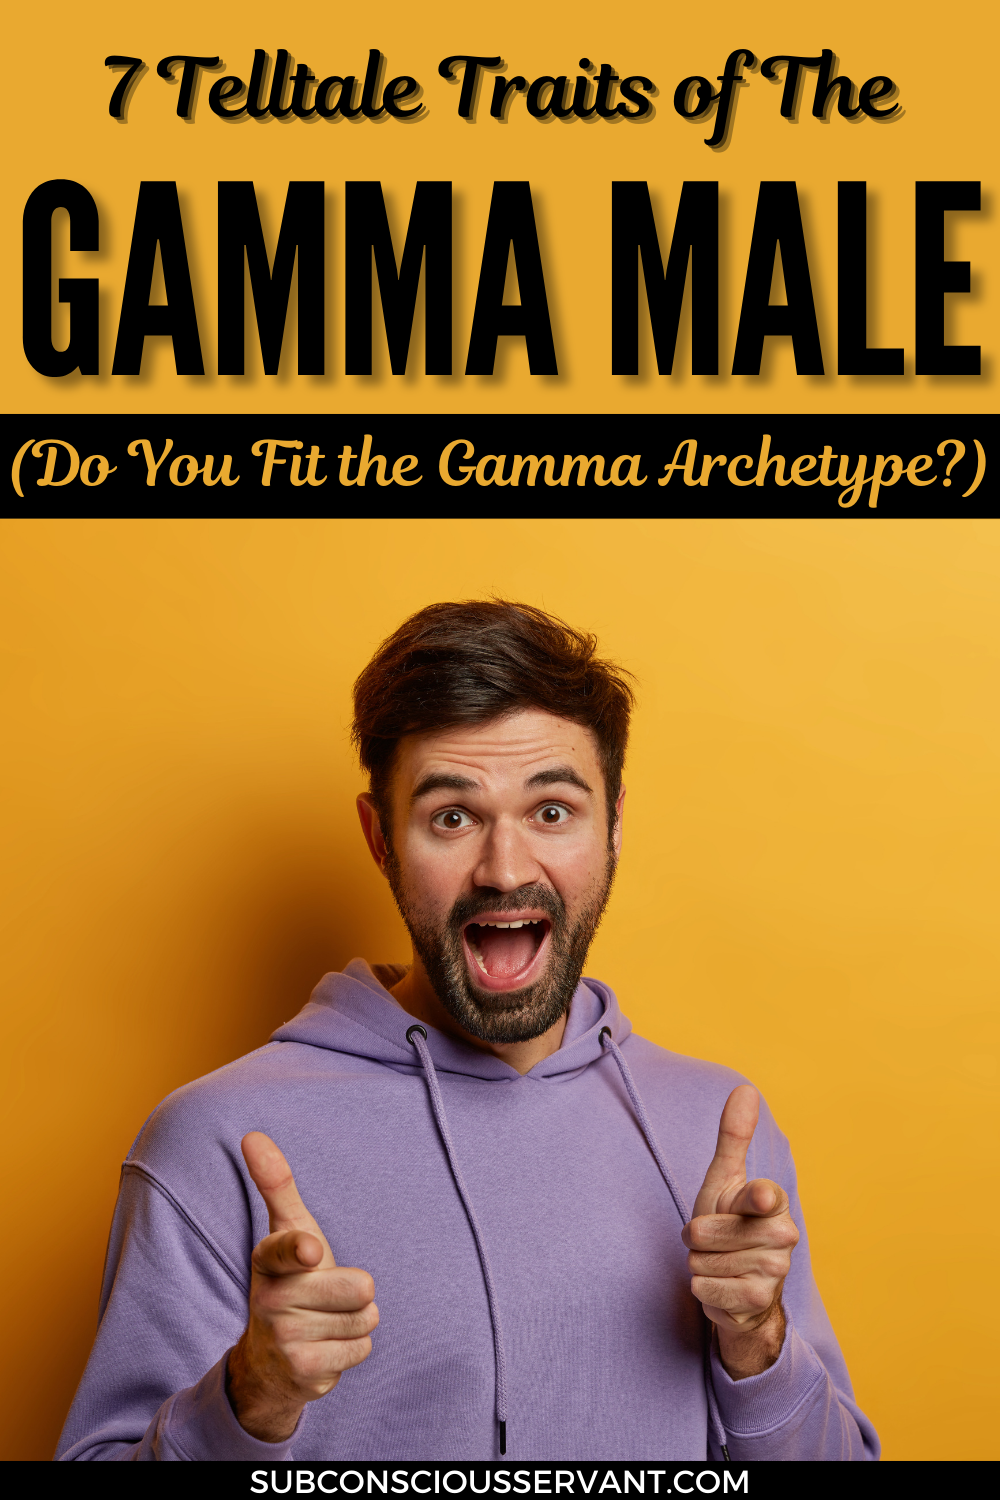 7 Telltale Traits Of The Gamma Male (Do You Fit The Gamma Archetype?)